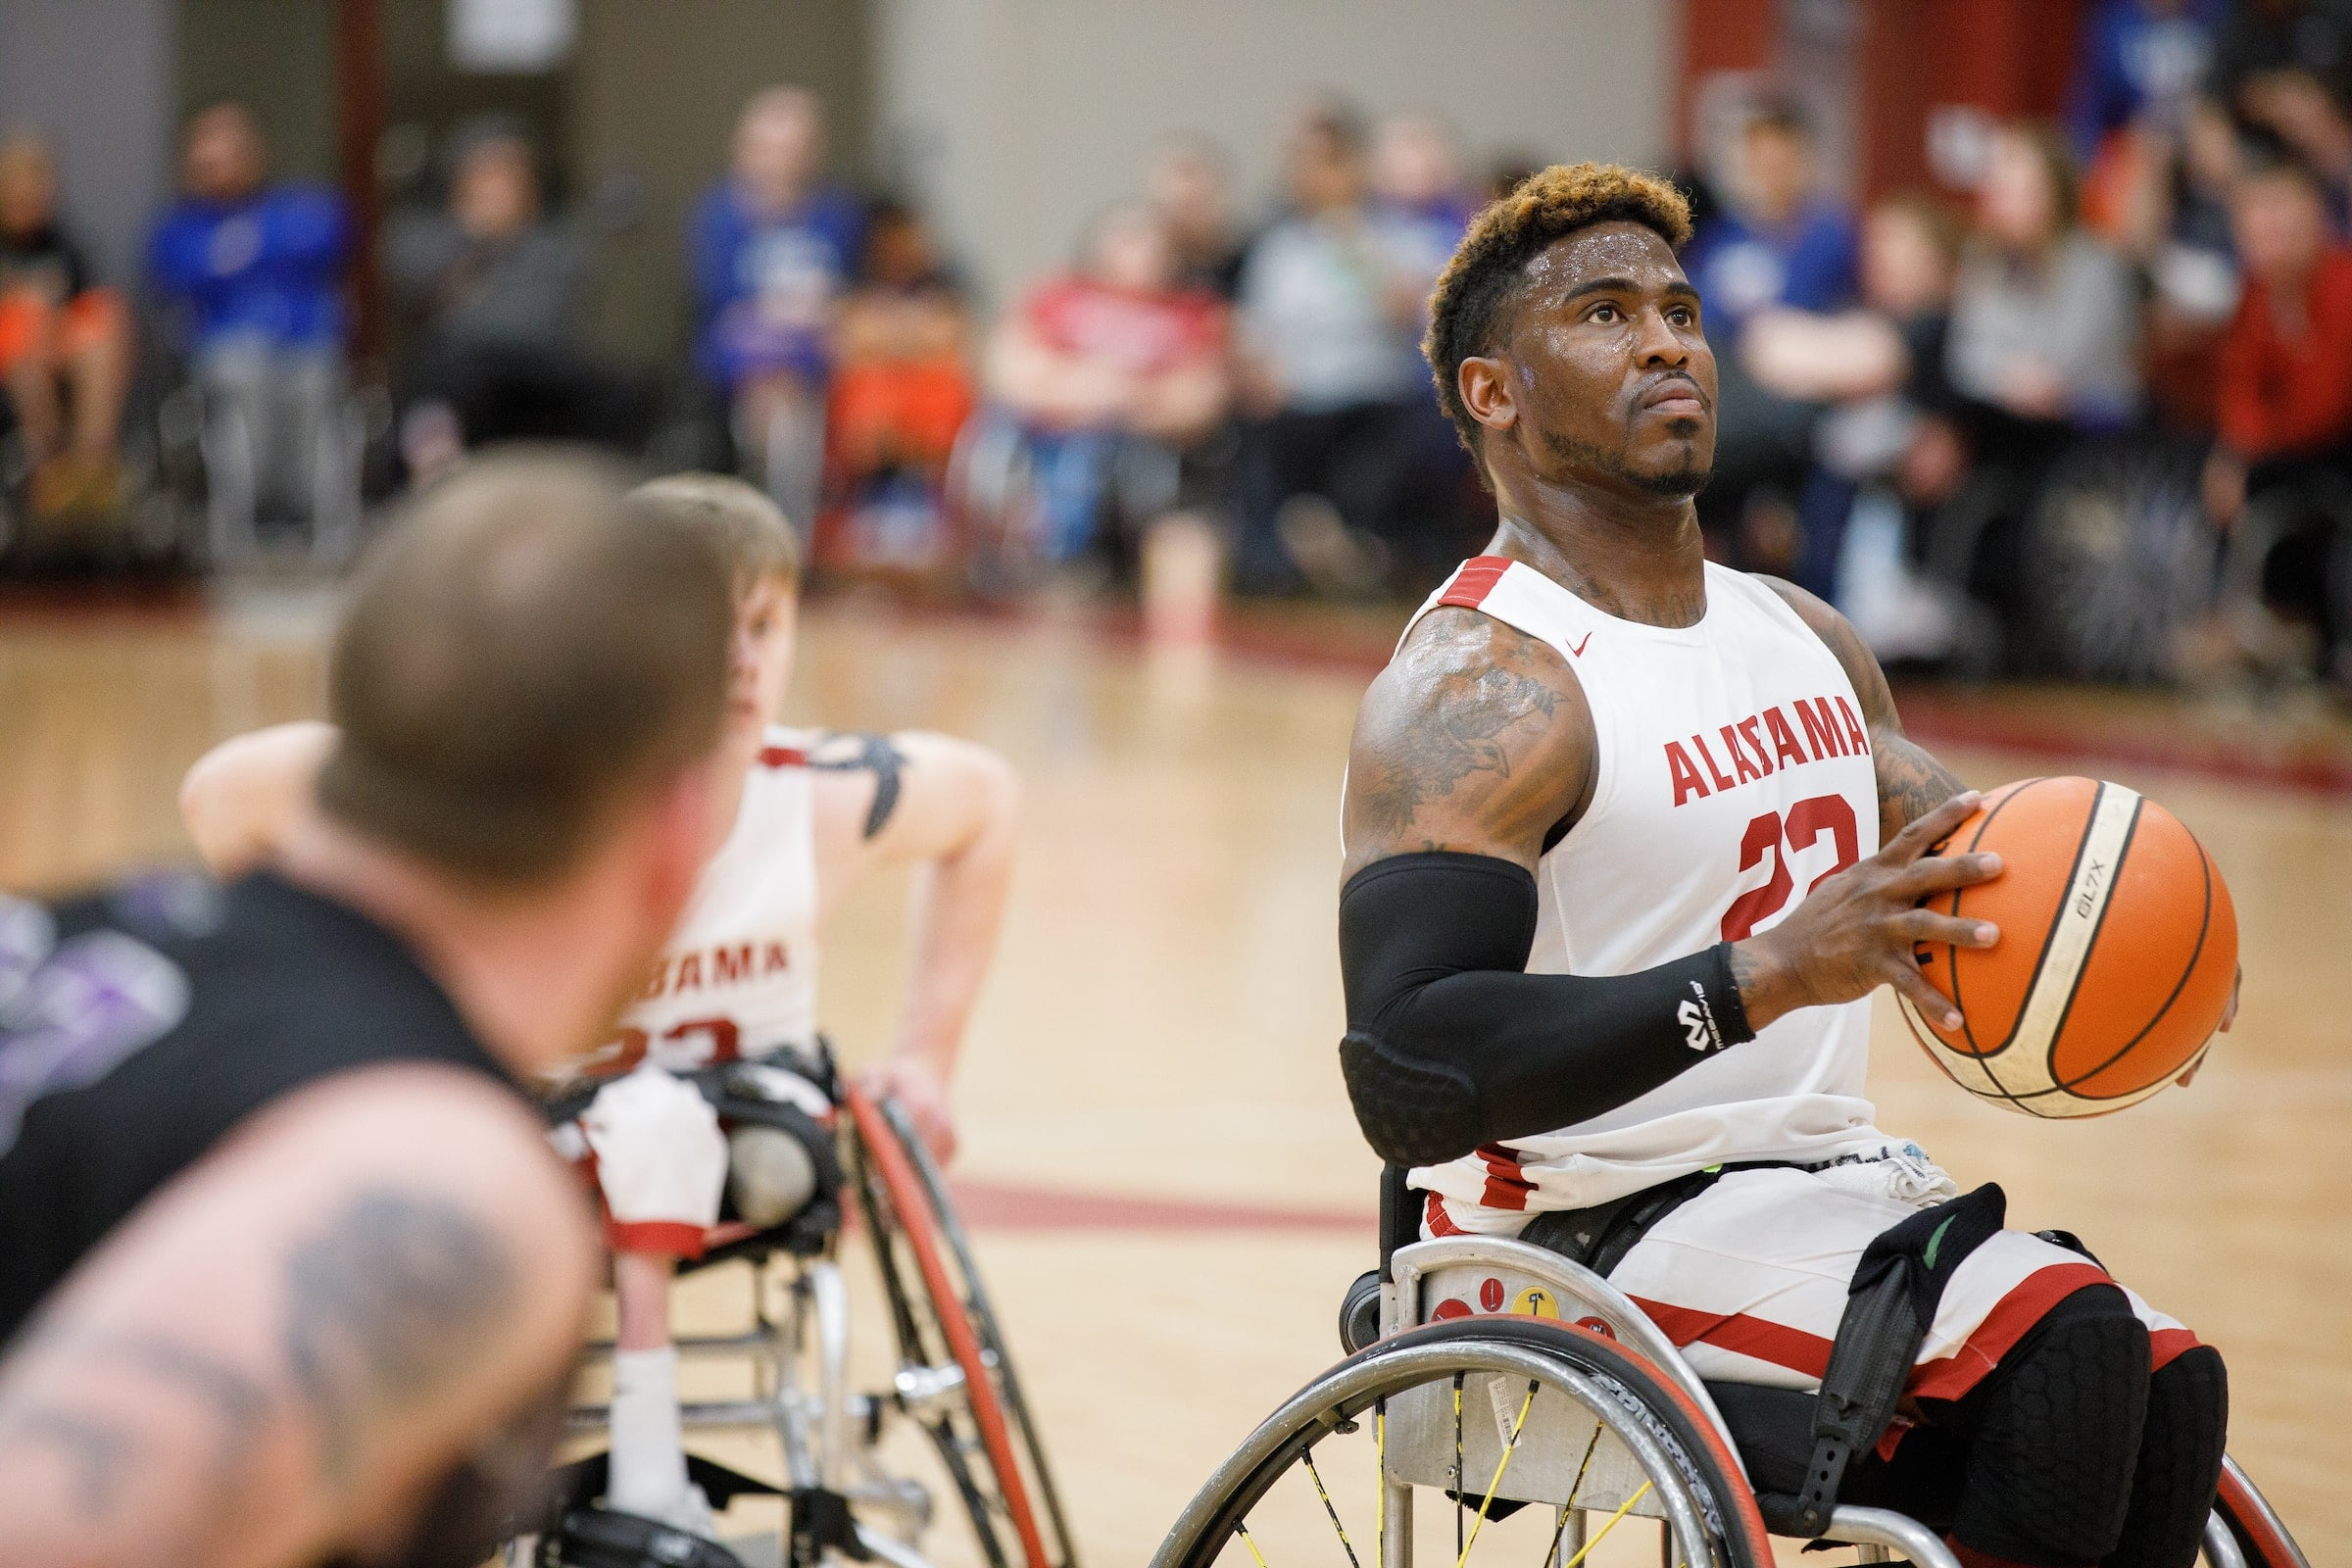 A wheelchair basketball player lines up for a free throw